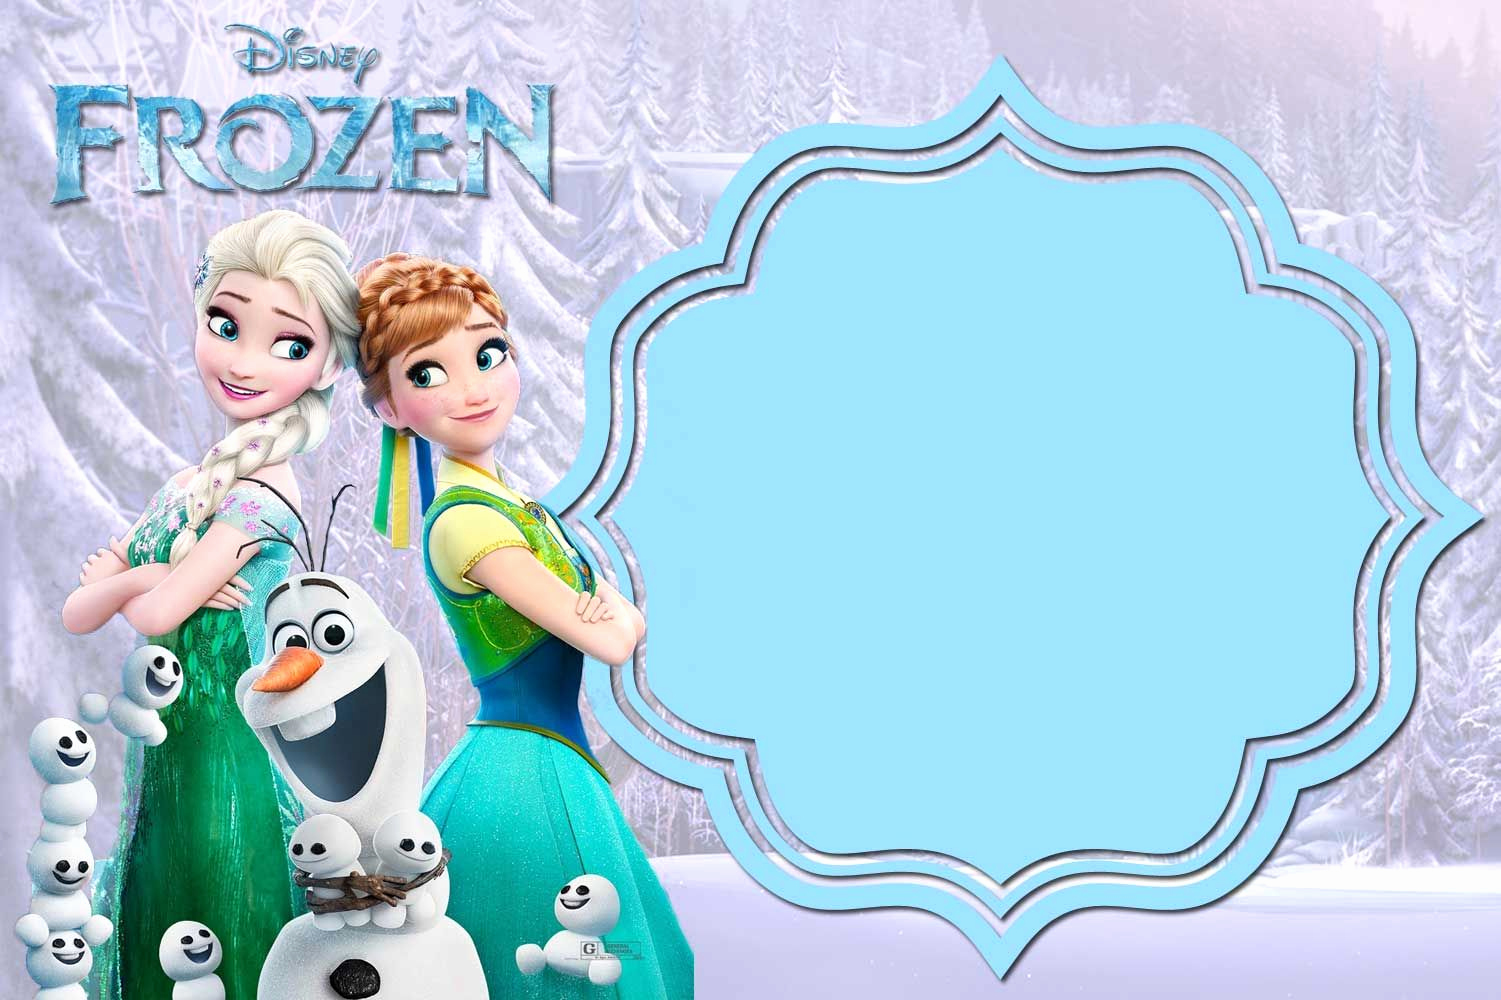 Free Frozen Invitation Template Beautiful Free Printable Frozen Anna and Elsa Invitation